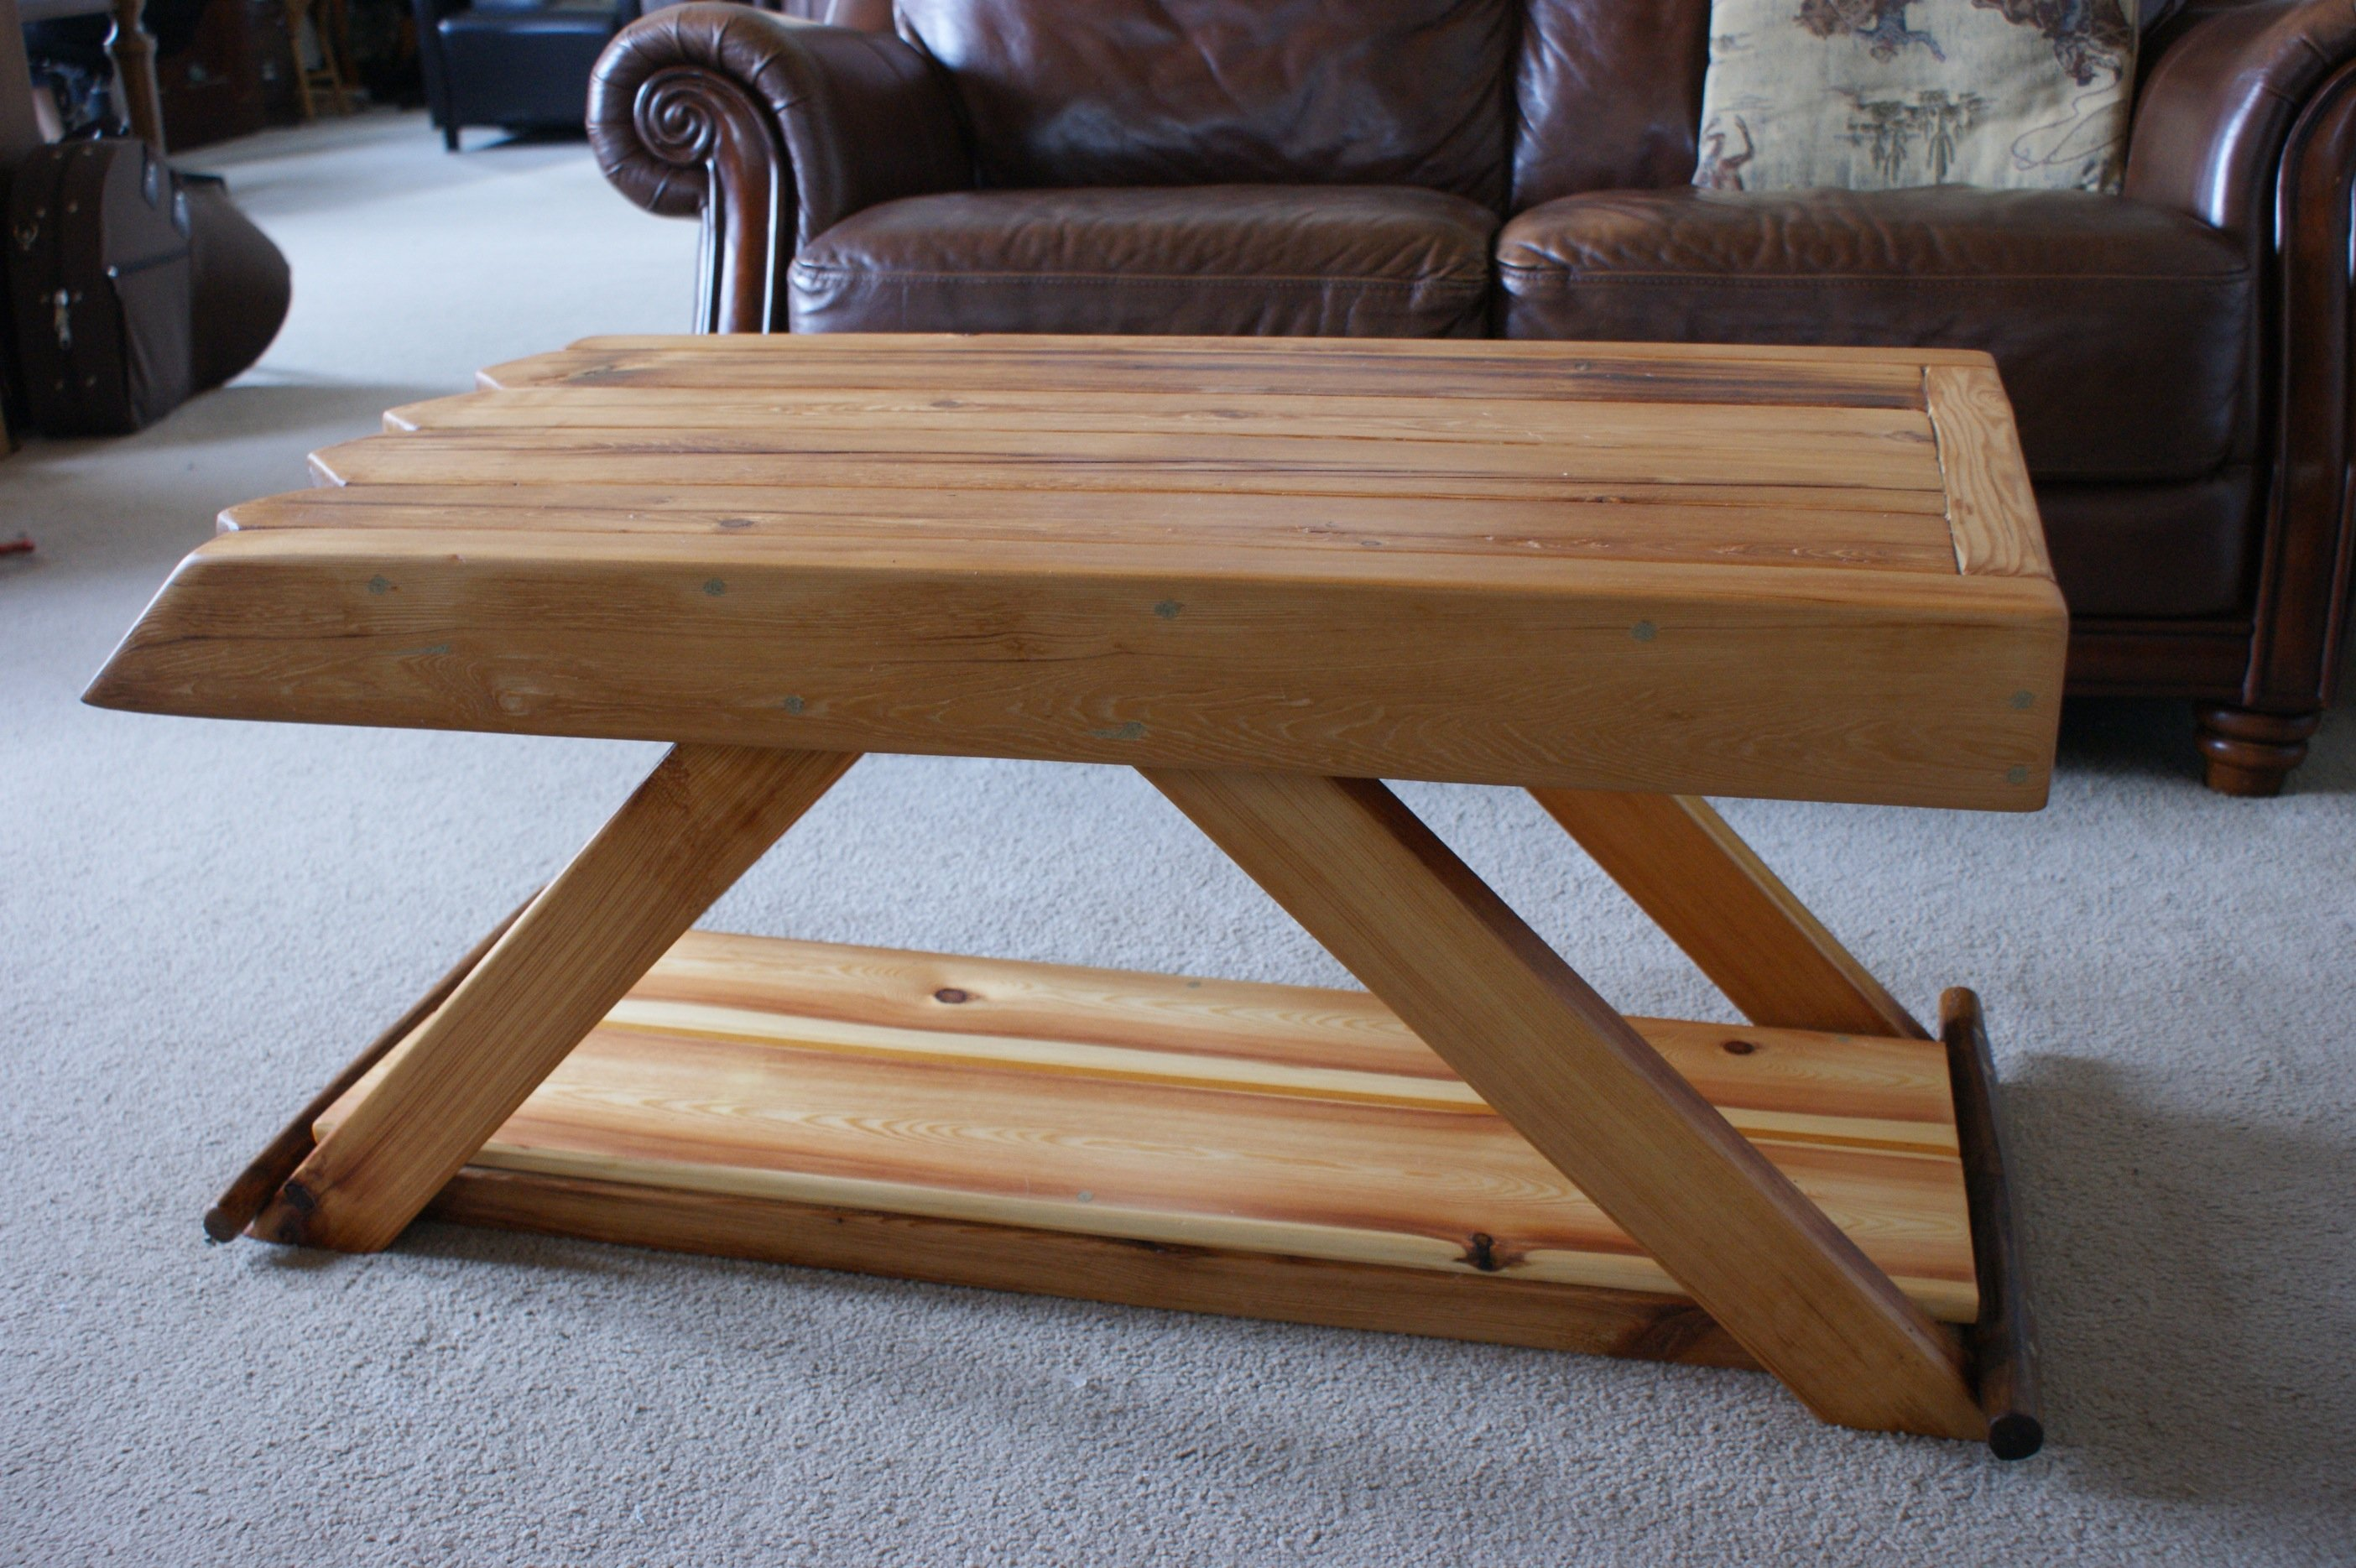 New coffee table from old barn